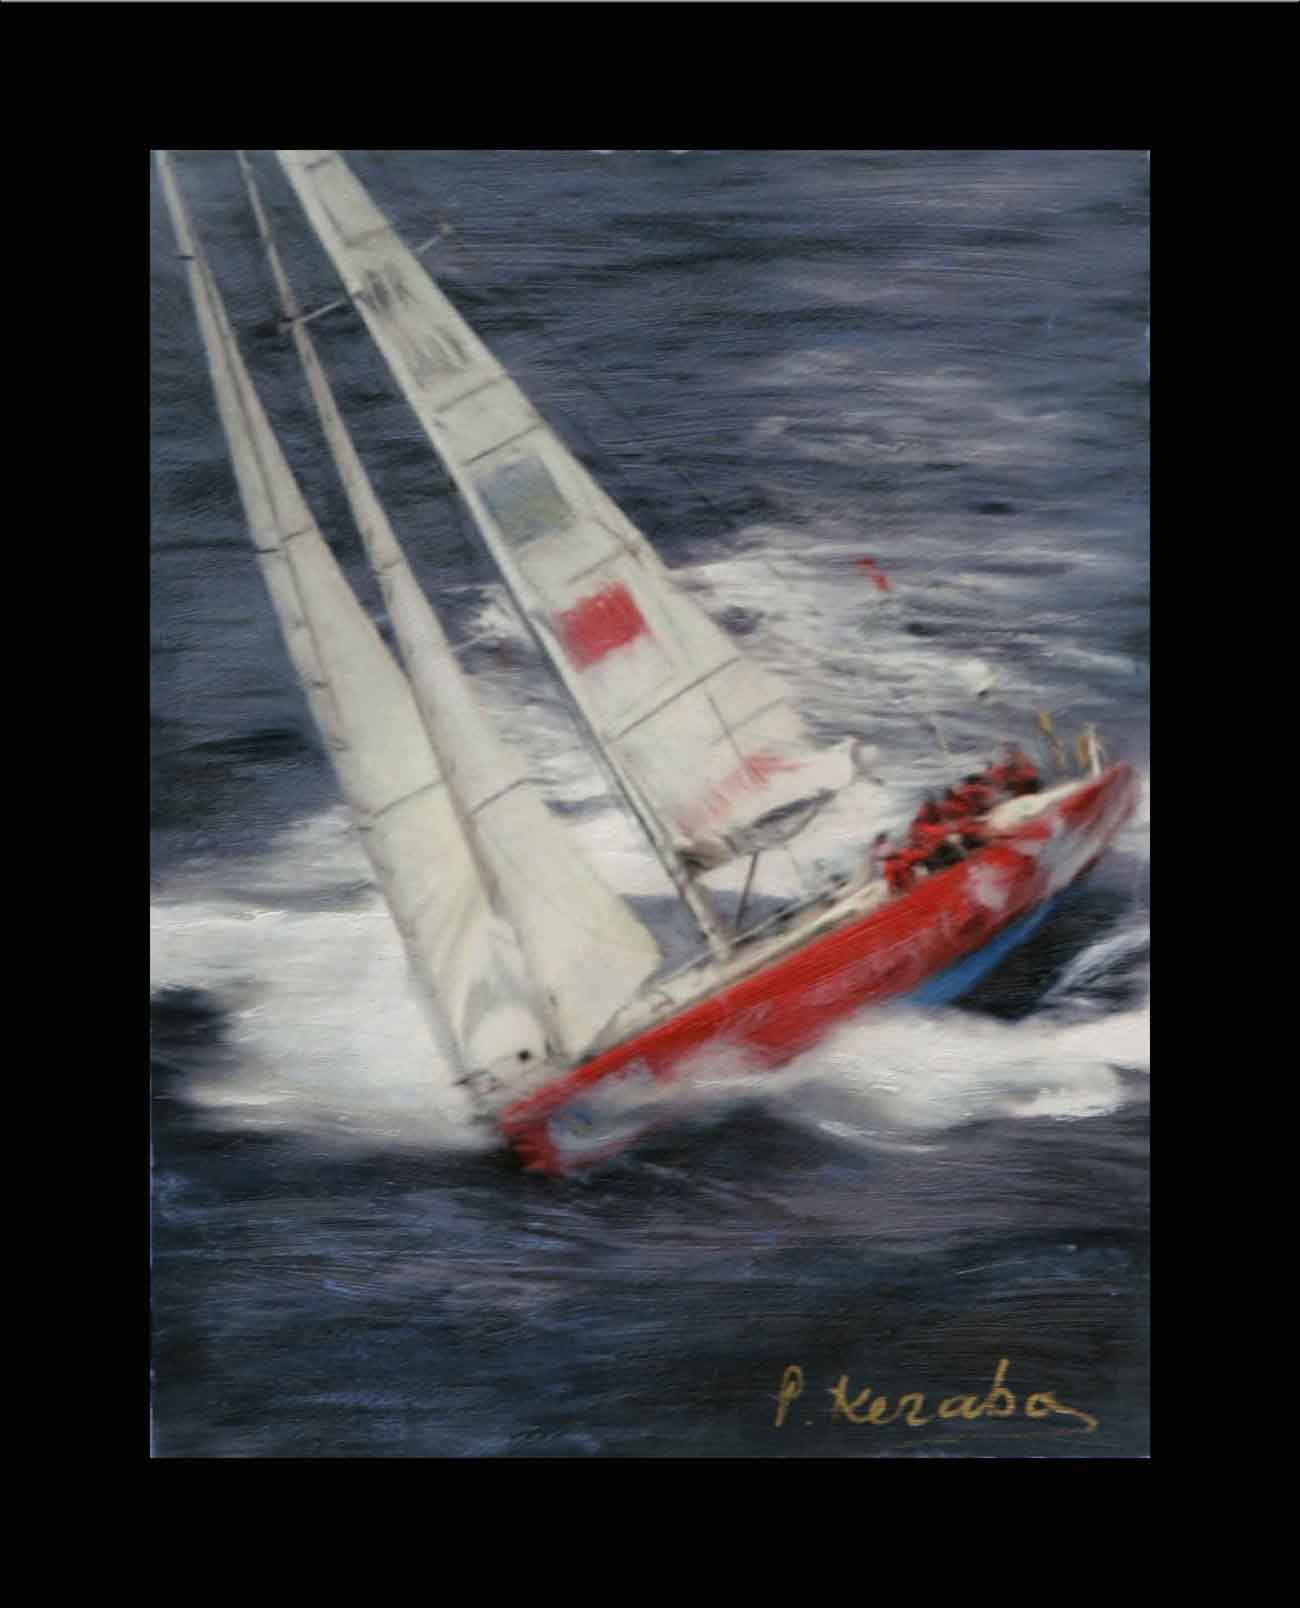 sailing_pavlos_kerabos paintings